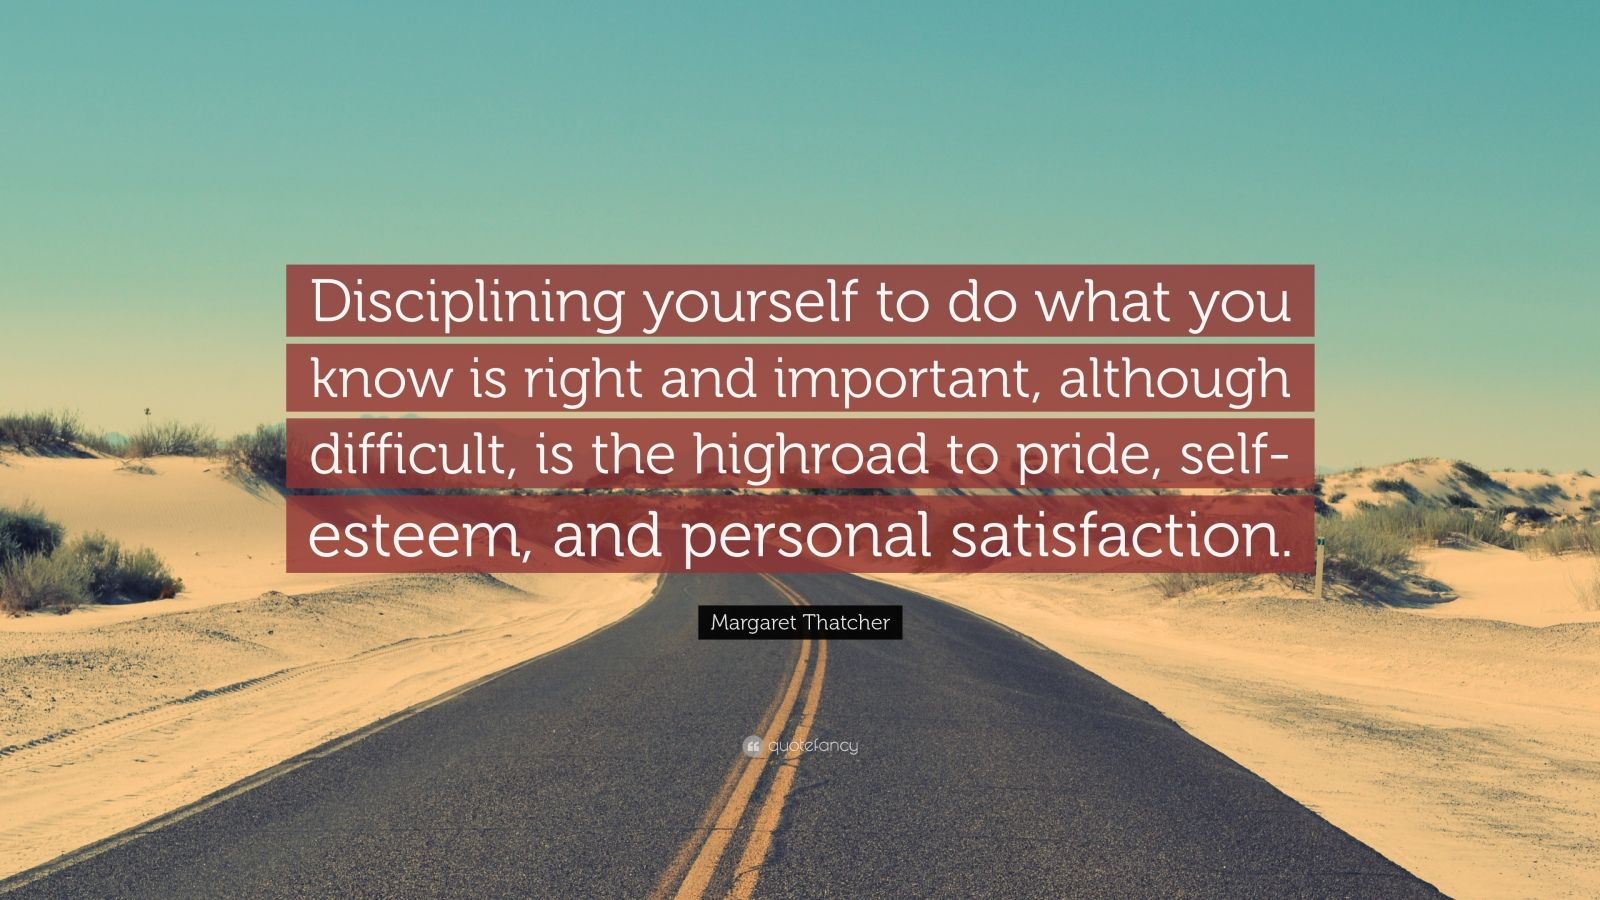 """Margaret Thatcher Quote: """"Disciplining yourself to do what you know is right and important, although difficult, is the highroad to pride, self-esteem, and personal satisfaction."""""""